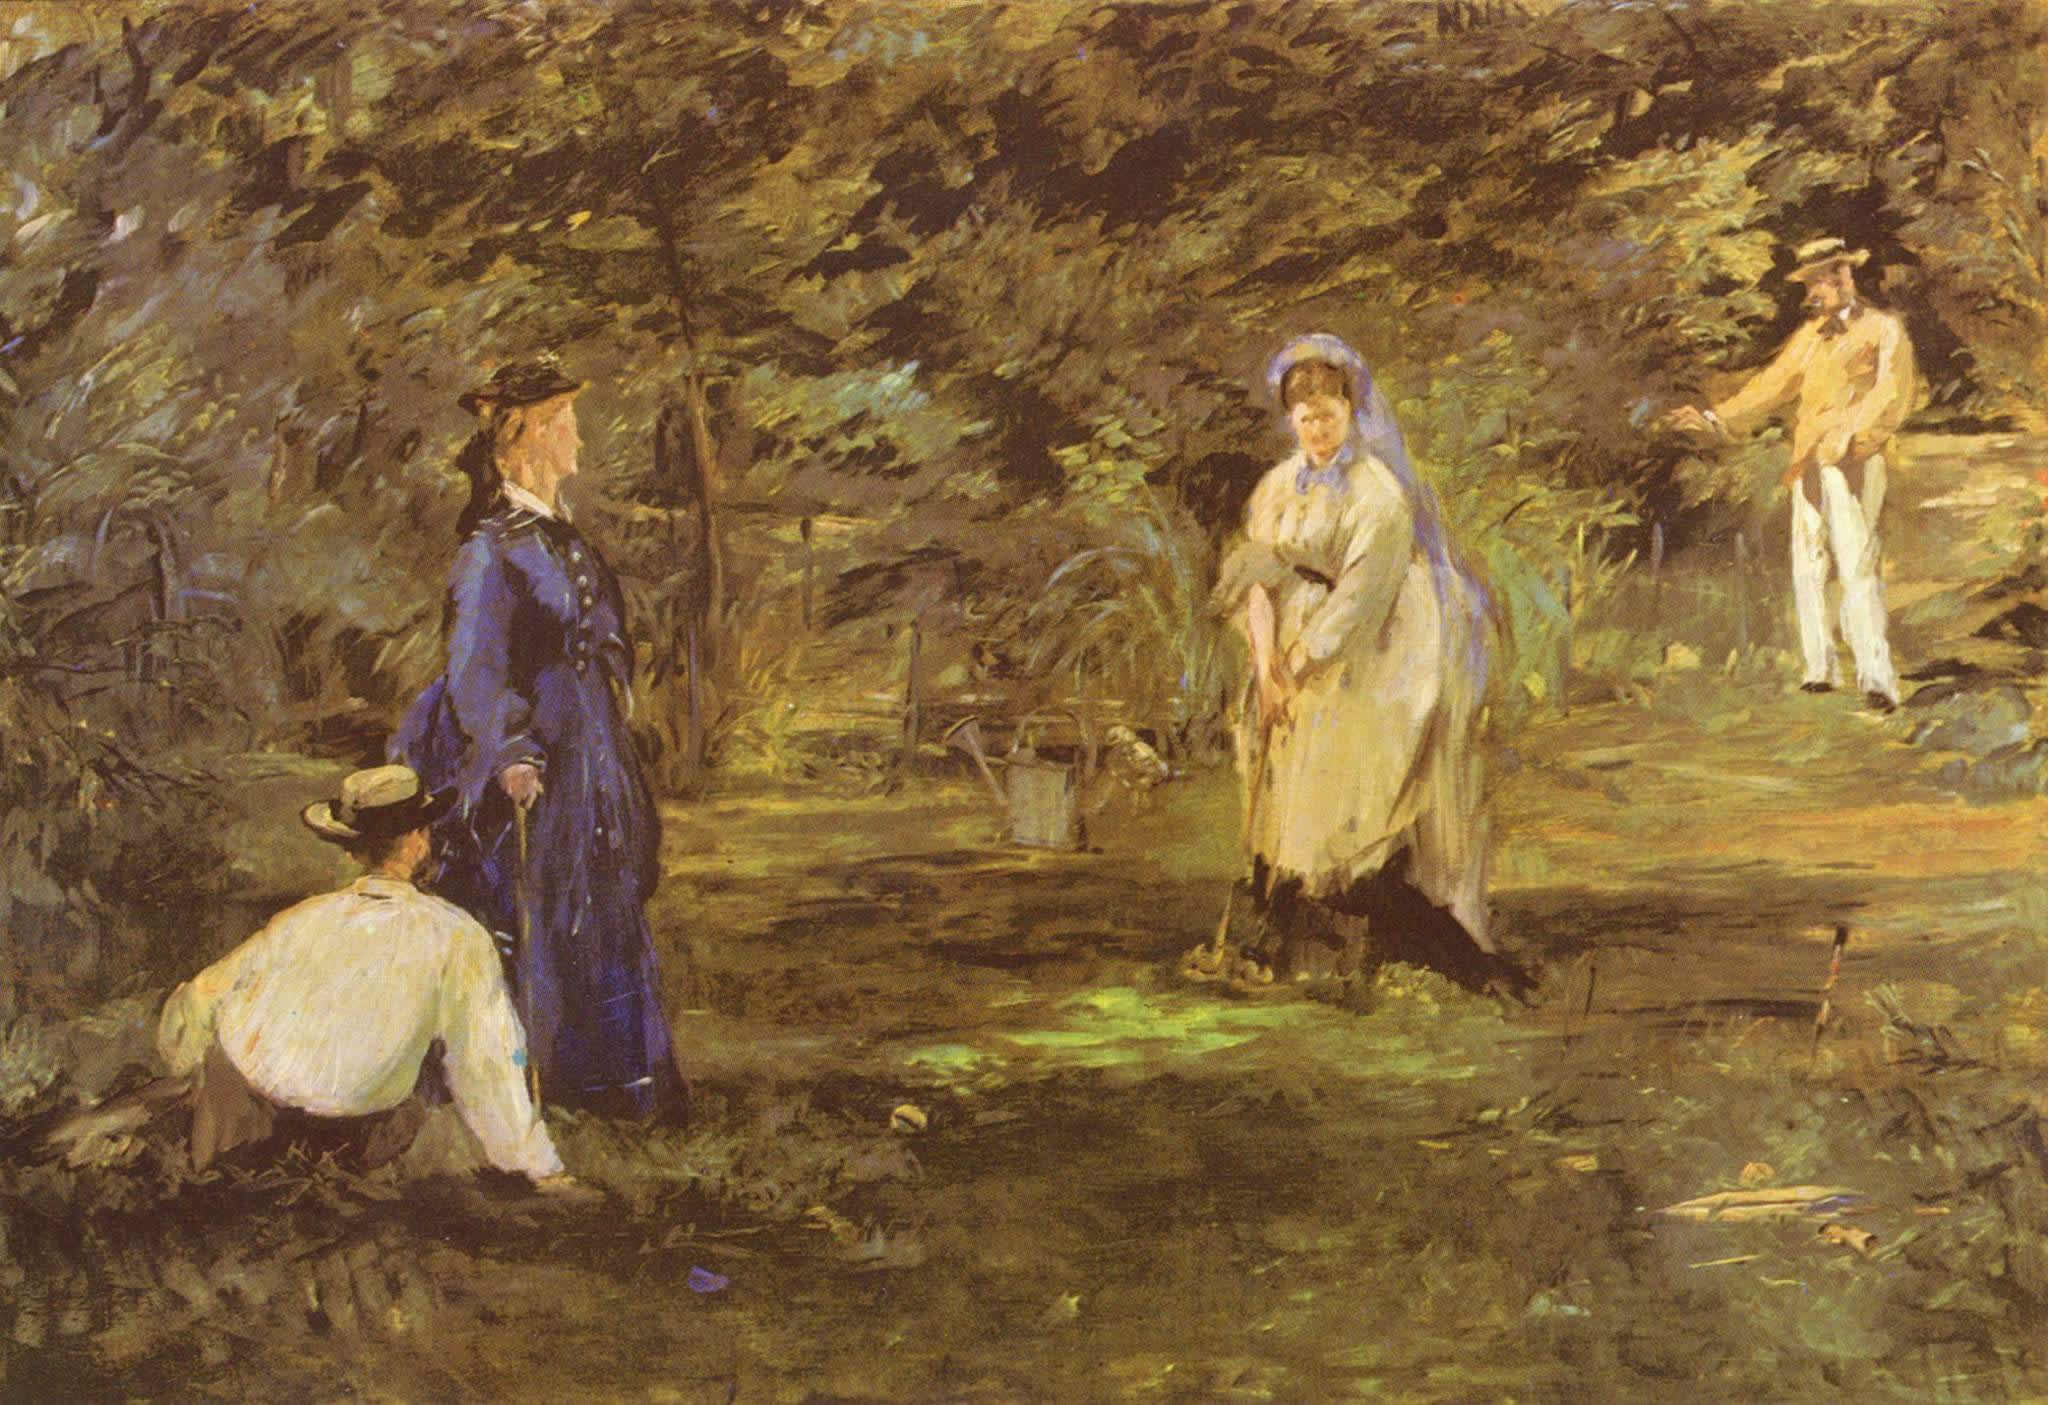 The Croquet Game, Édouard Manet